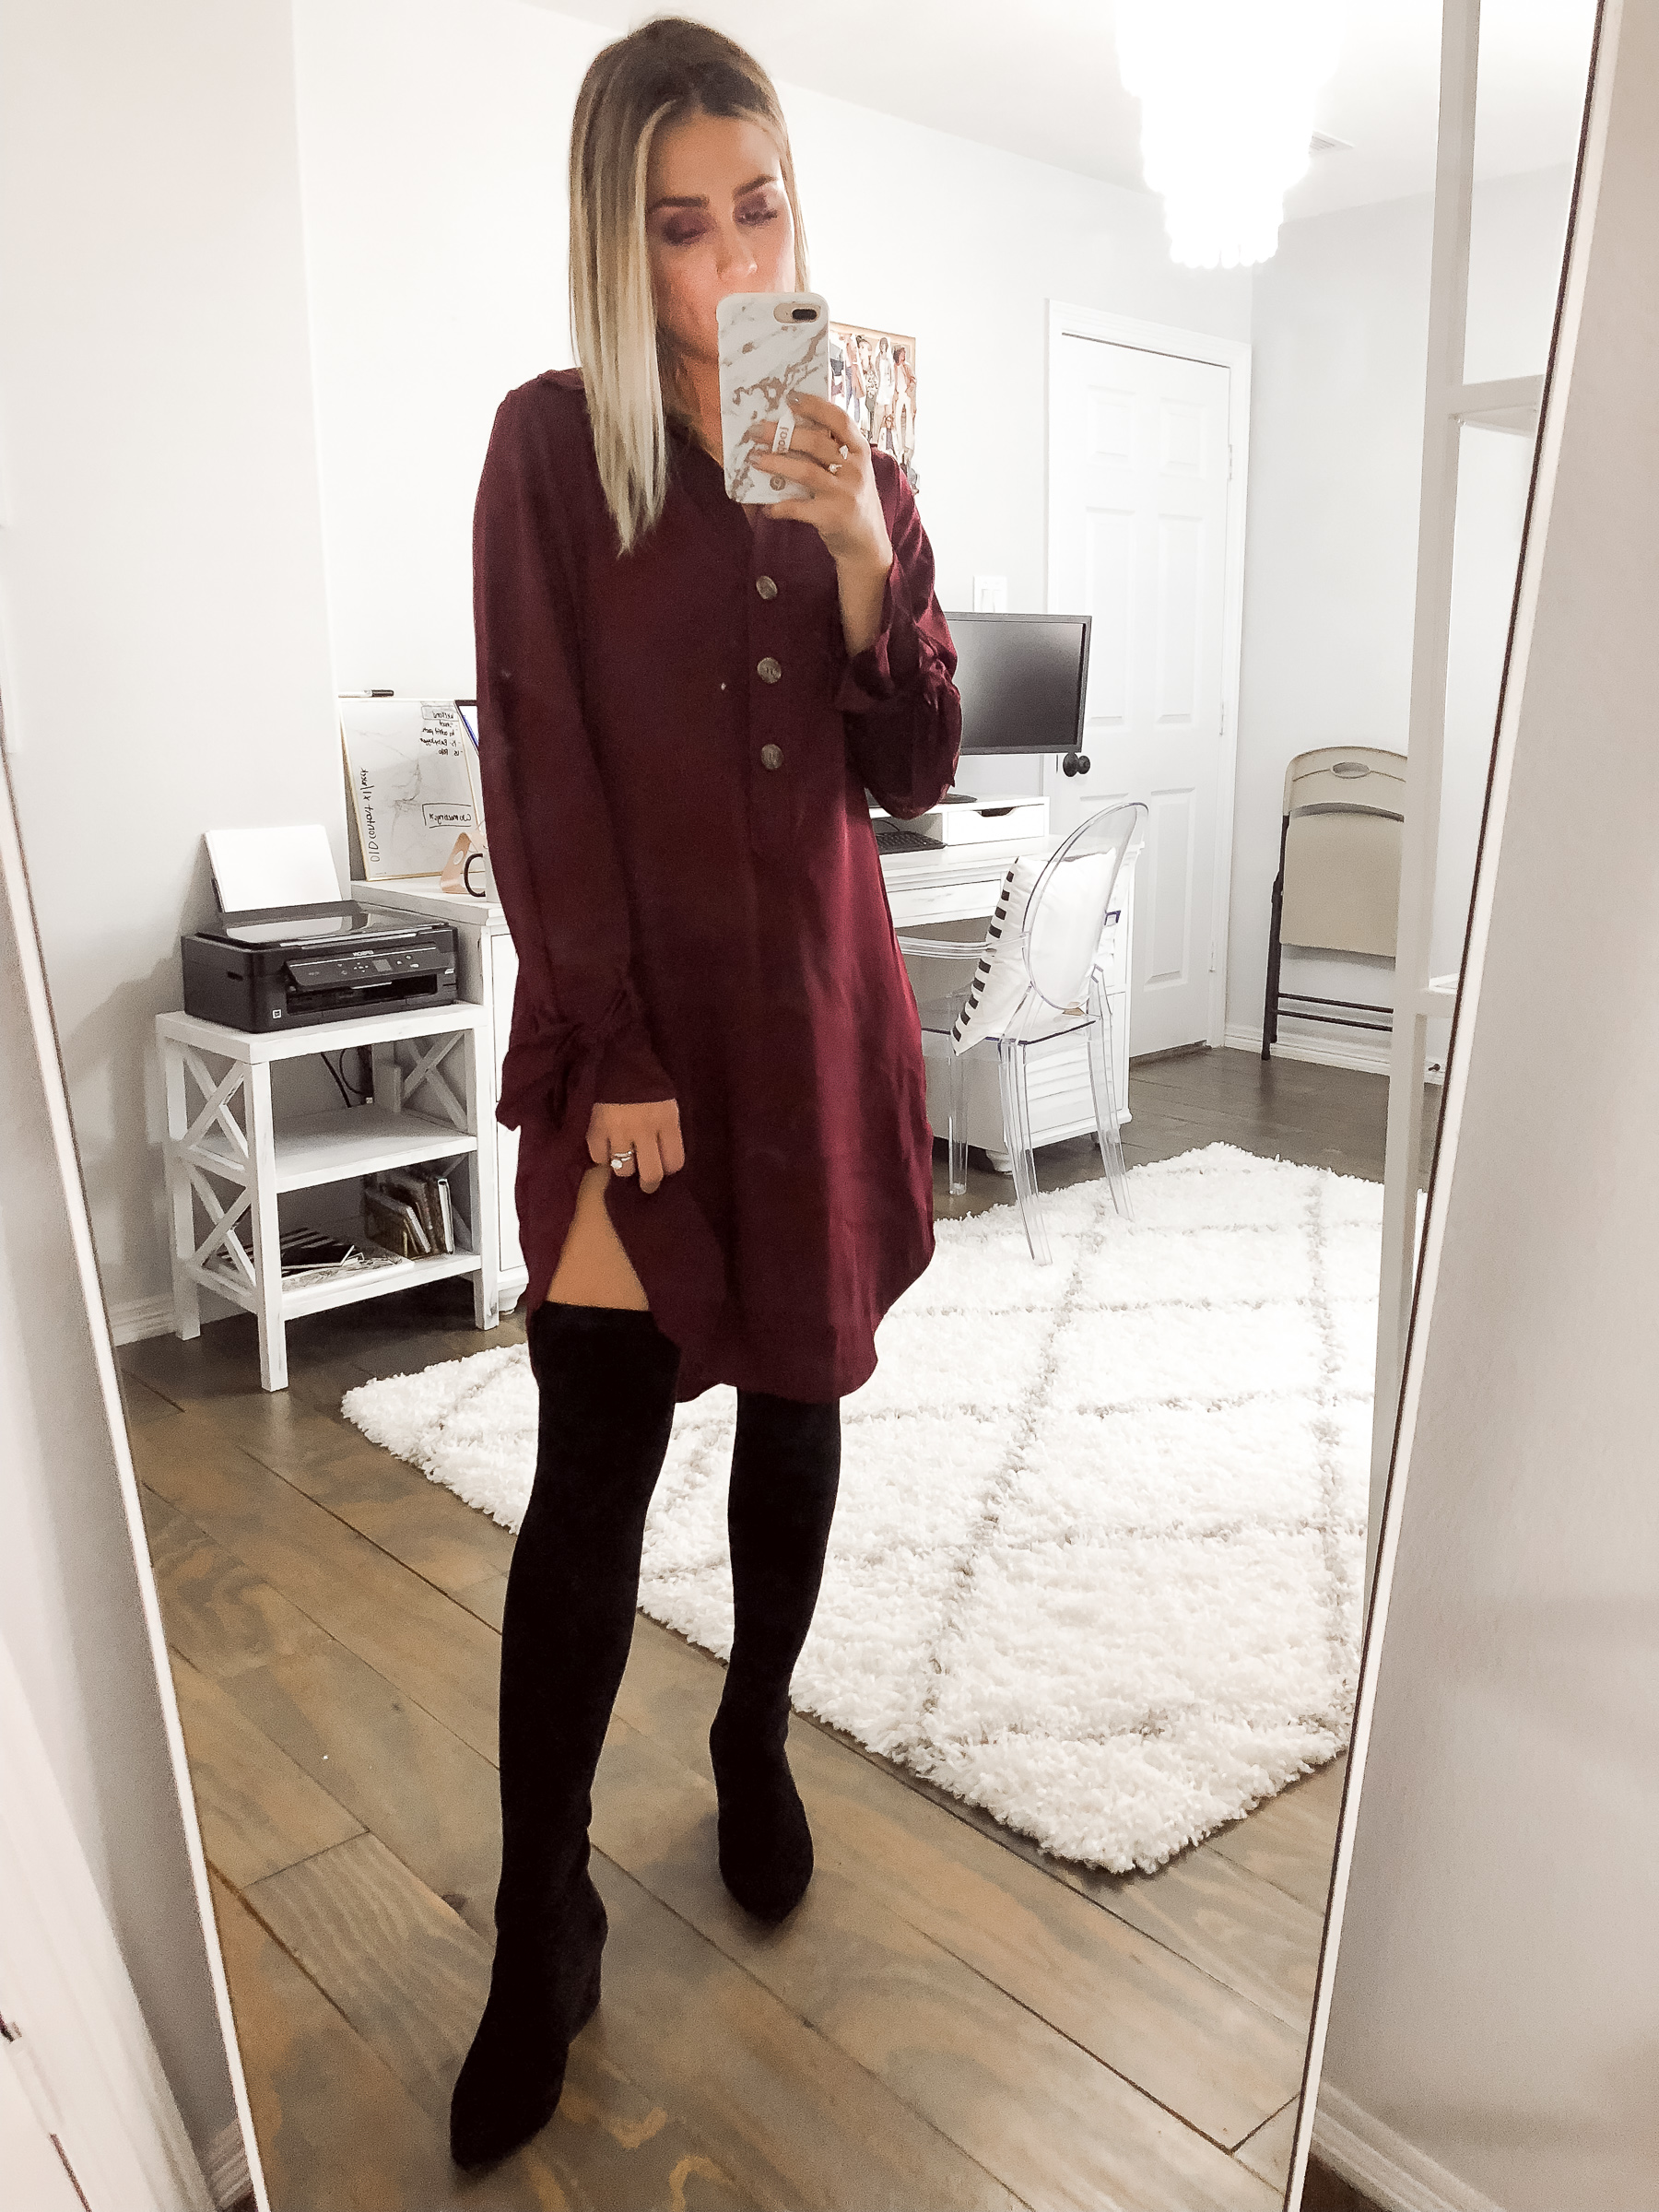 Houston fashion blogger Uptown with Elly Brown wears an oversized t-shirt dress with over the knee boots